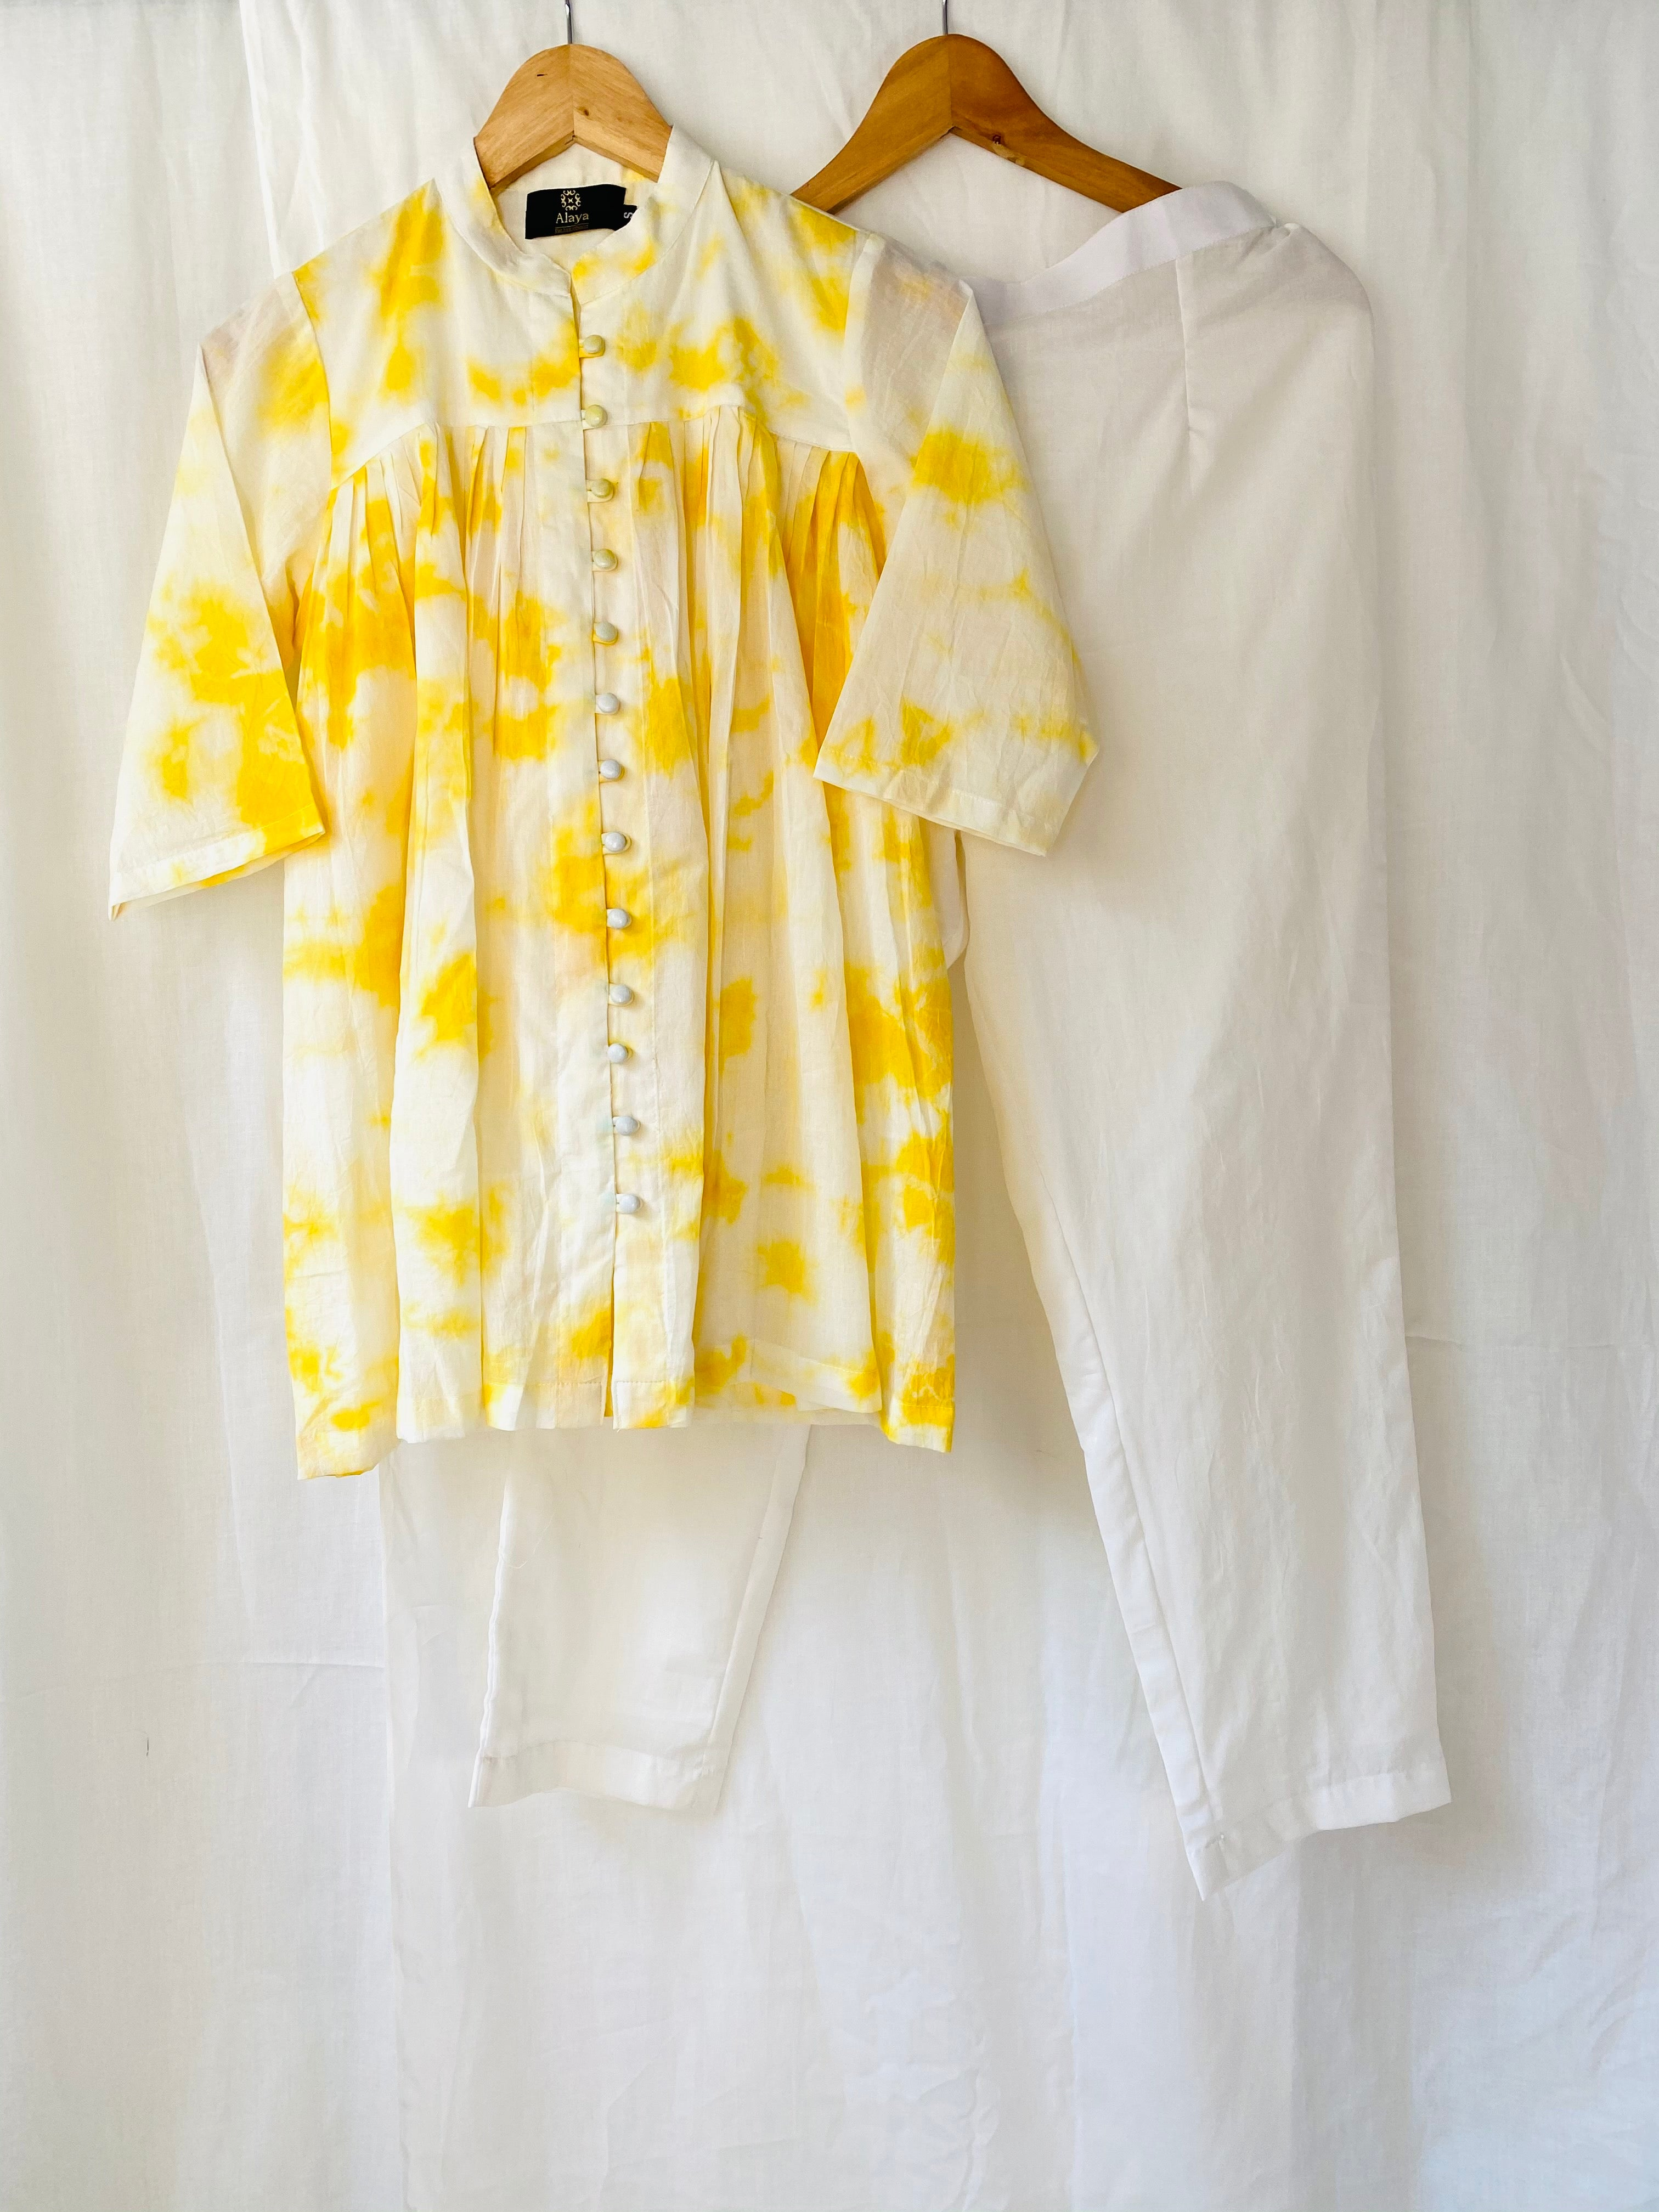 Yellow Tie Dye Top with solid White Pants